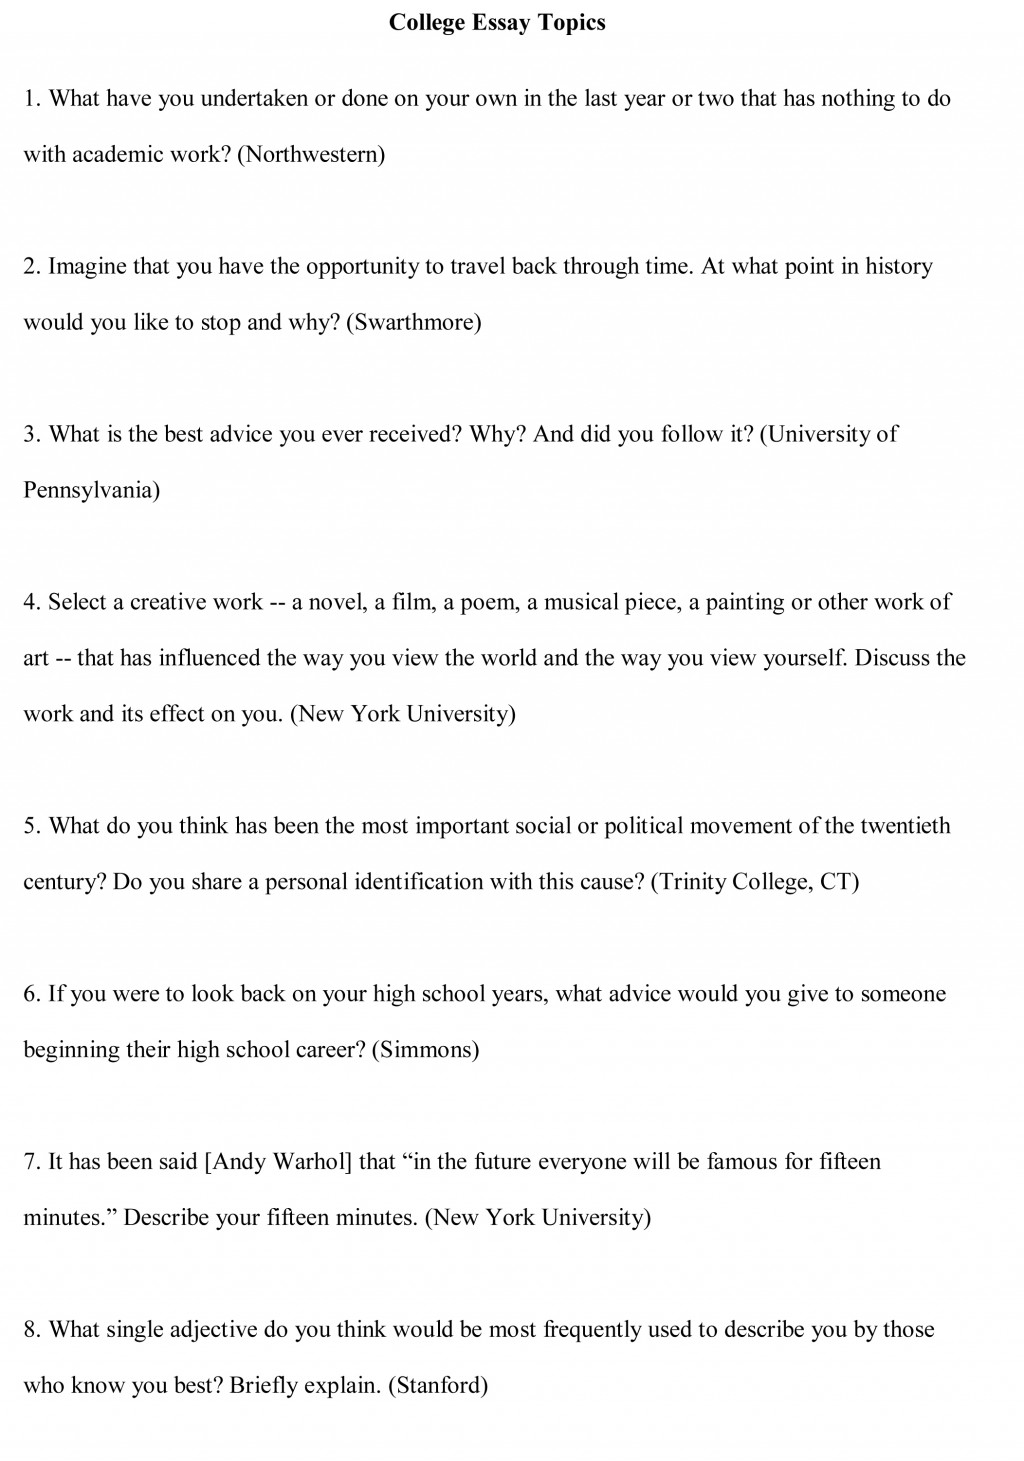 018 Essay Example College Topics Free Sample1 Writing Archaicawful Jobs Uk In Kenya Large